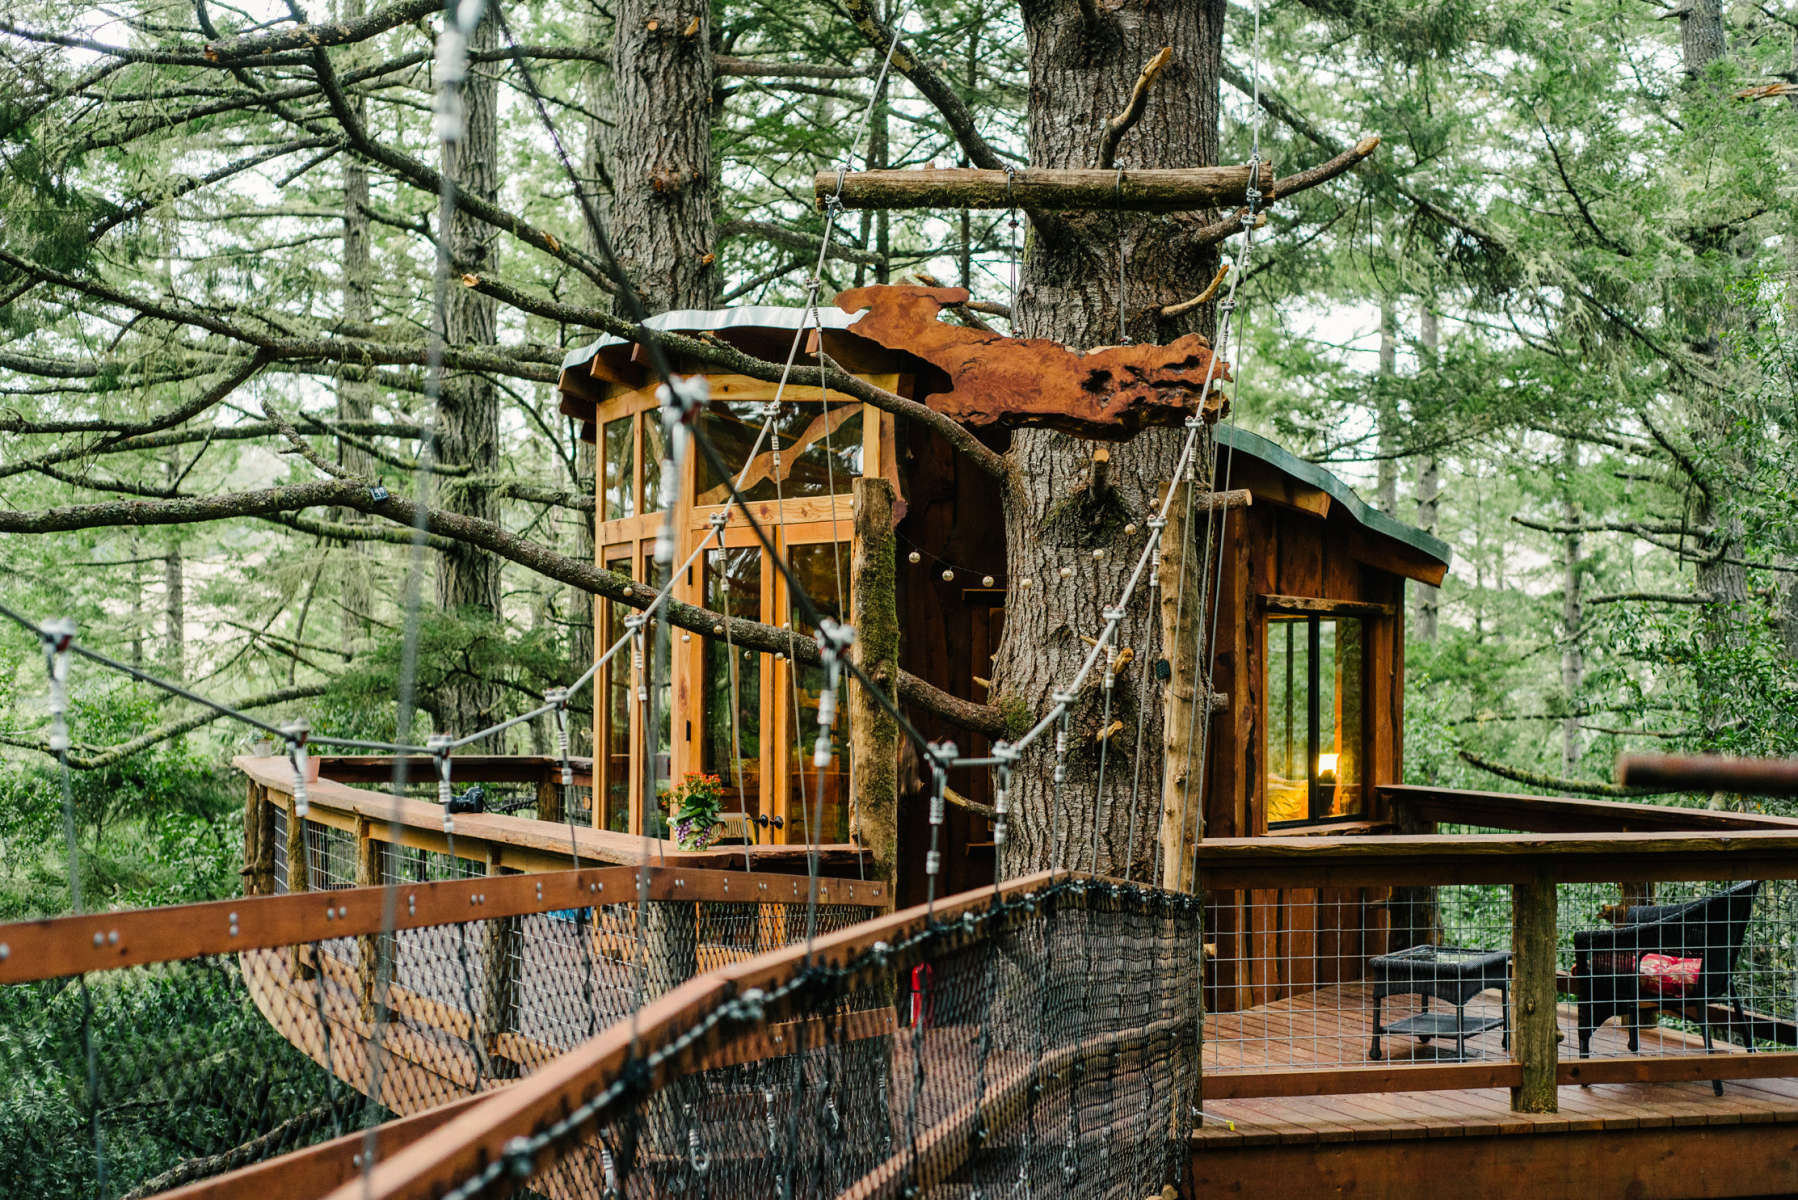 Great ... Julian B.u0027s Photo At Eagleu0027s Nest Treehouse Farmstay ...